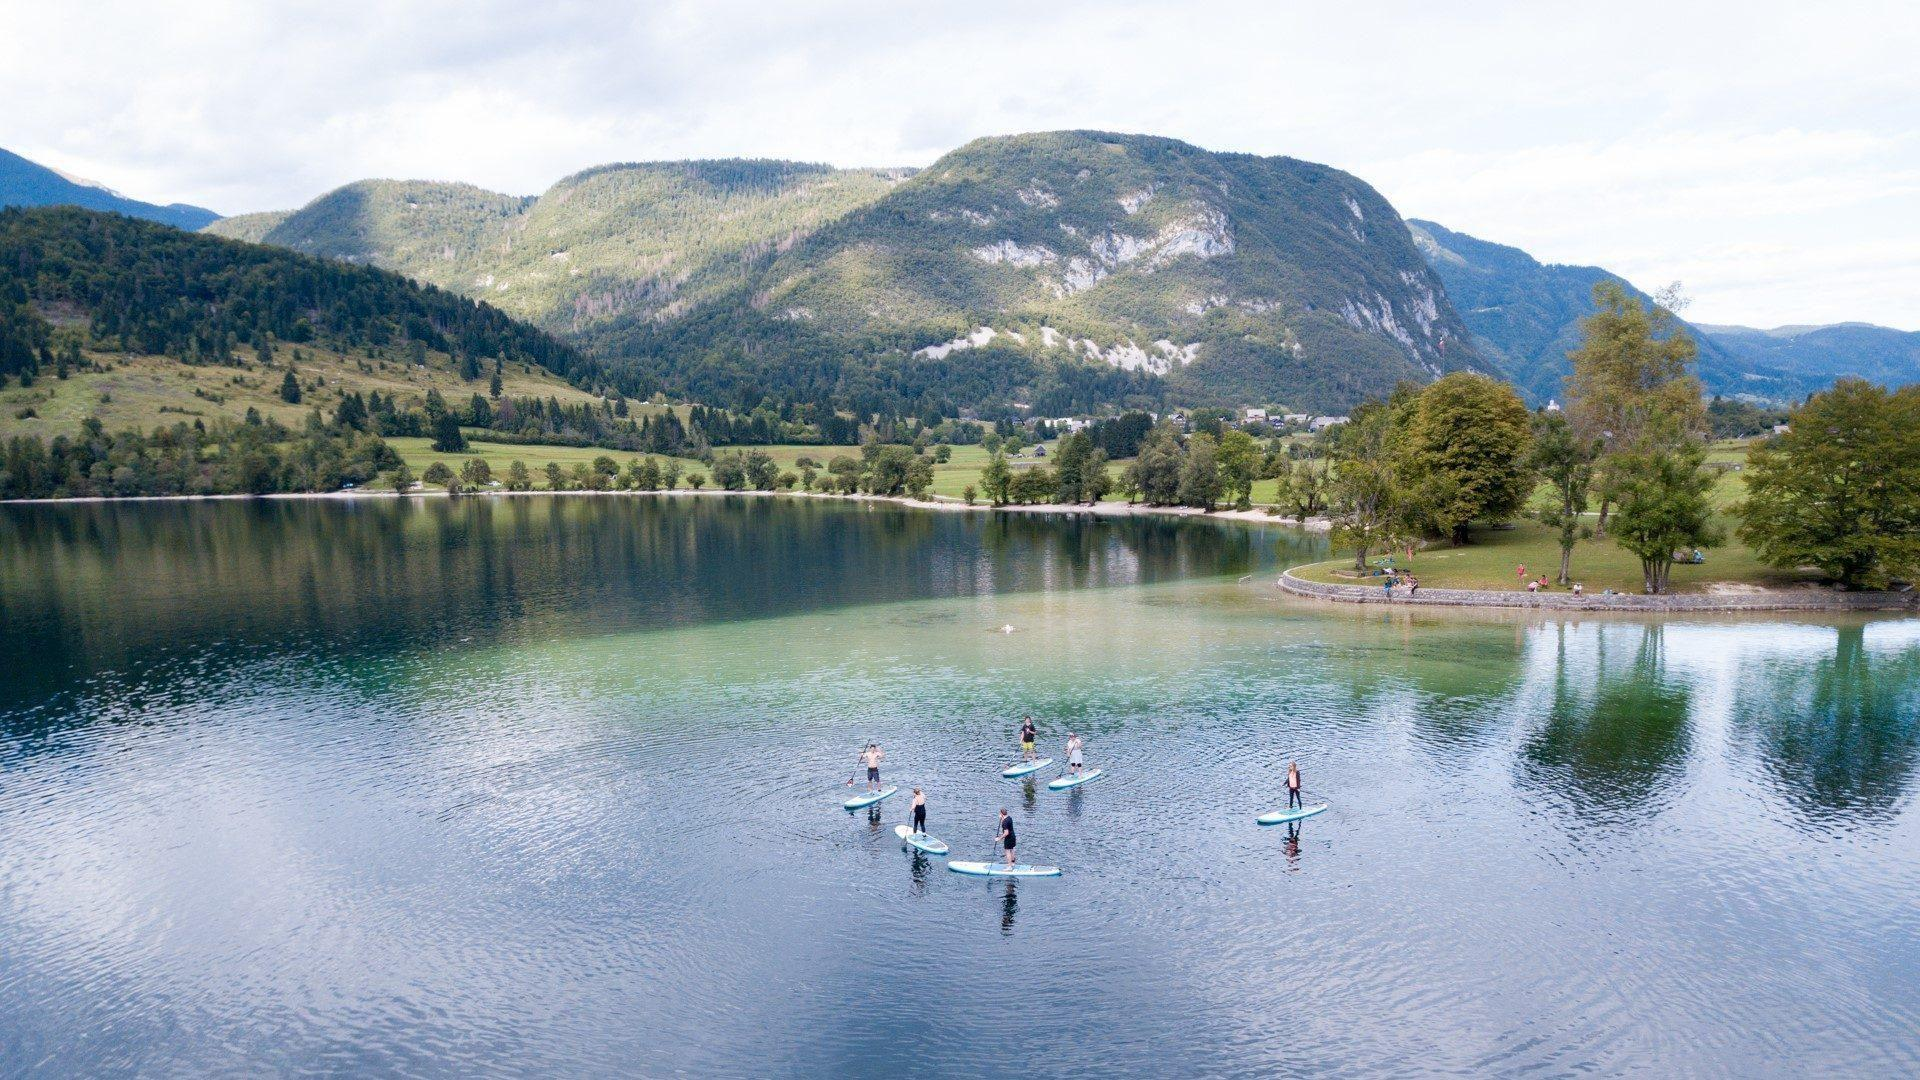 Paddleboarding bohinj lake